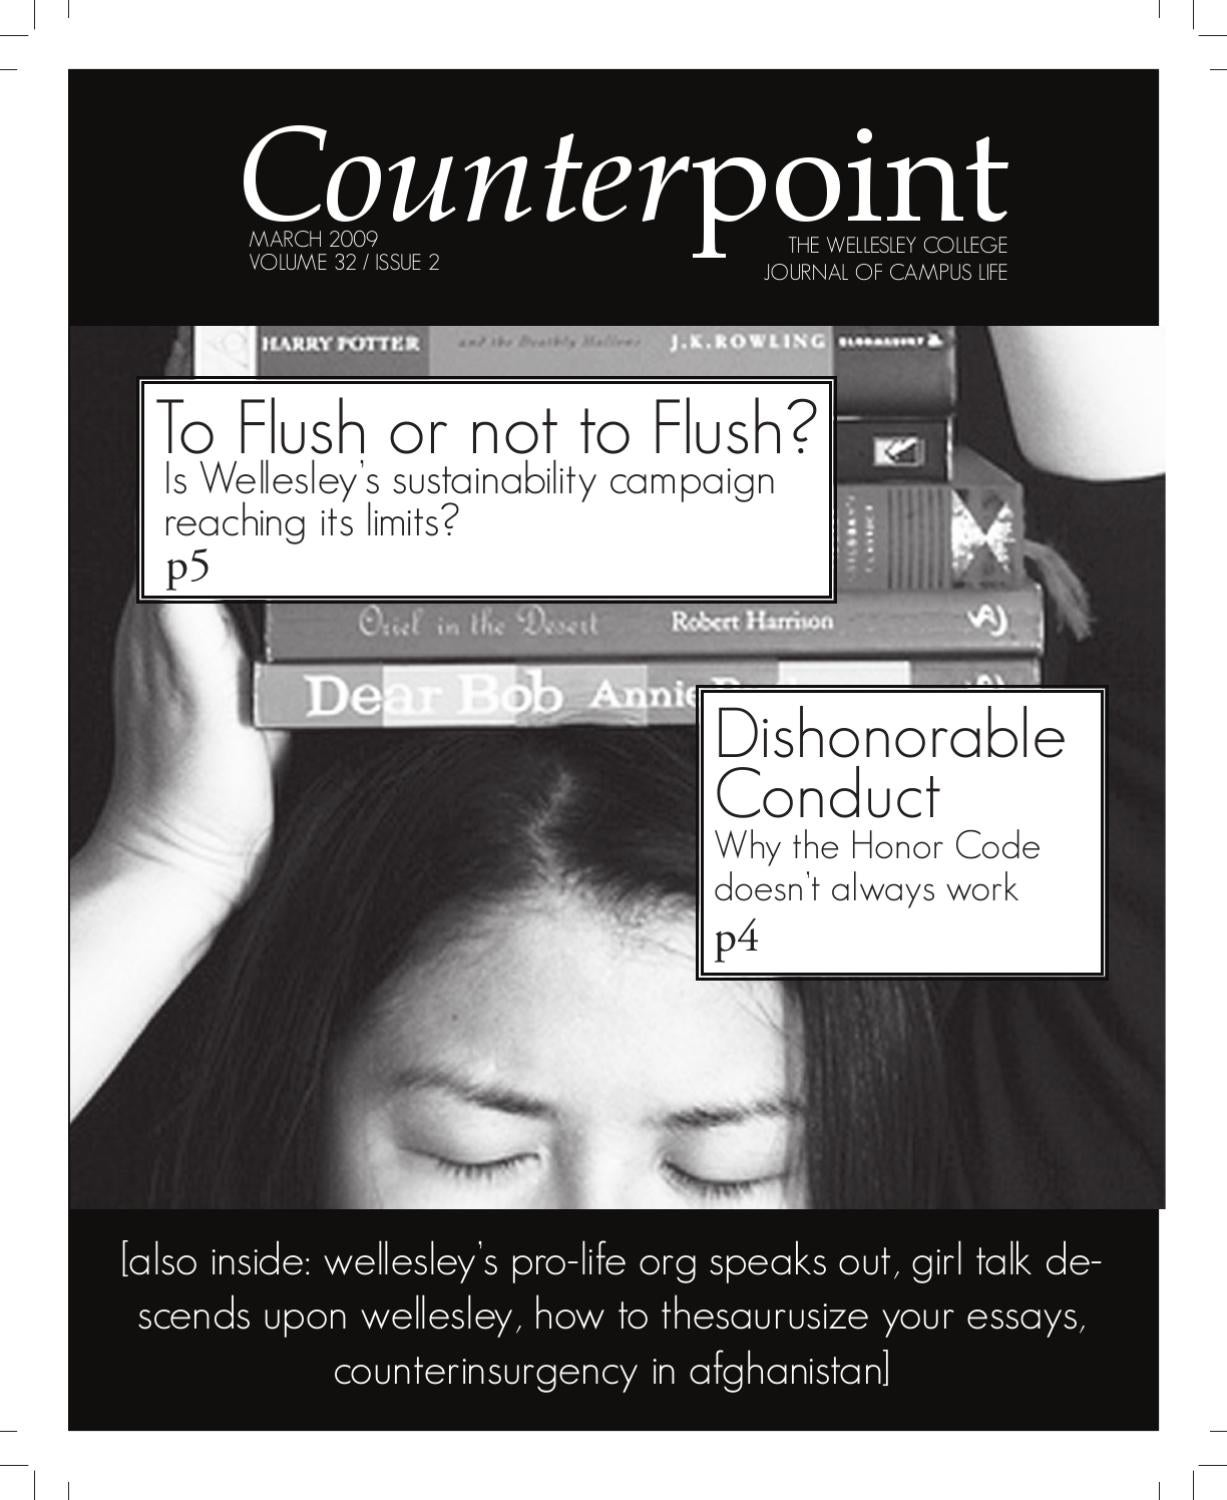 March09 by Counterpoint Magazine - issuu